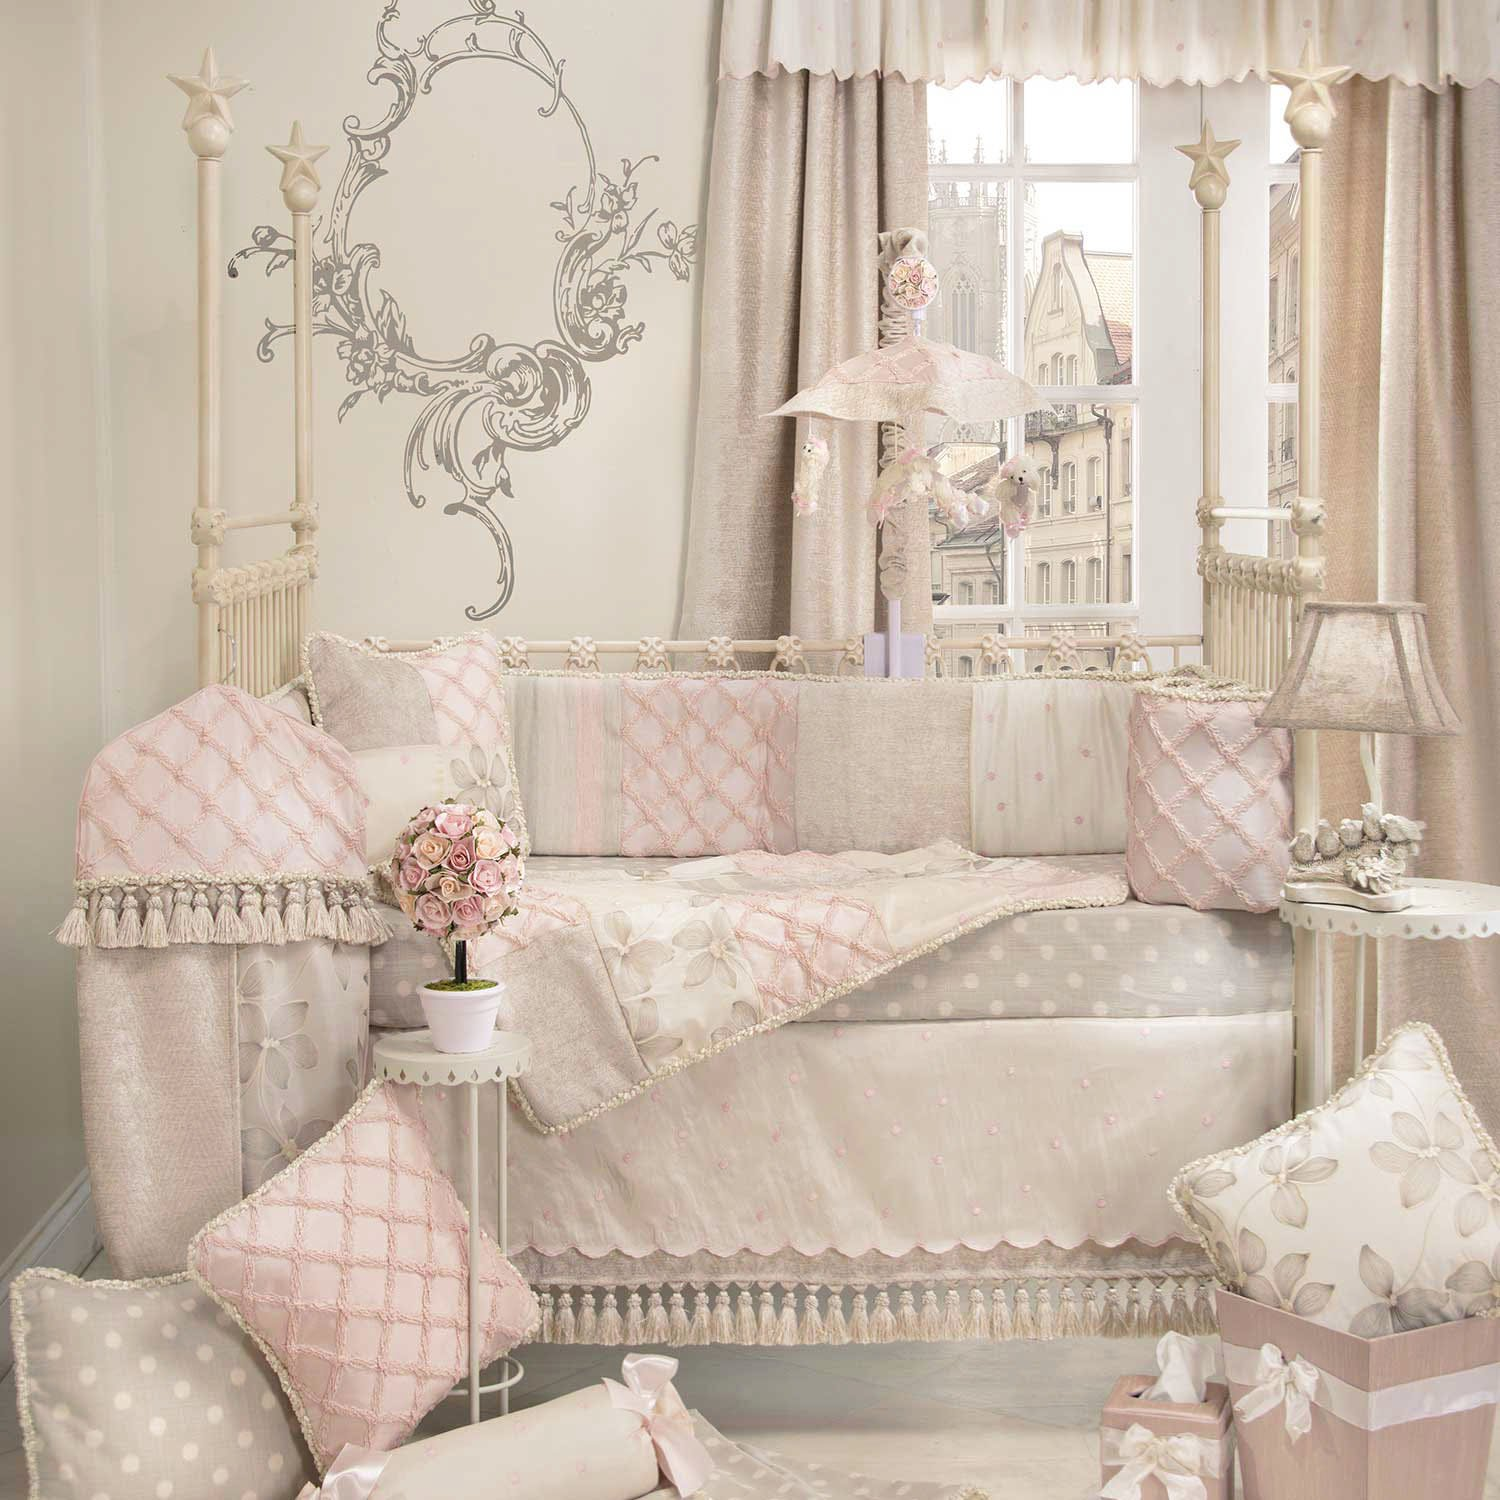 Delightful Amazon.com : Florence 4 Piece Baby Crib Bedding Set With Bumper By Glenna  Jean : Baby